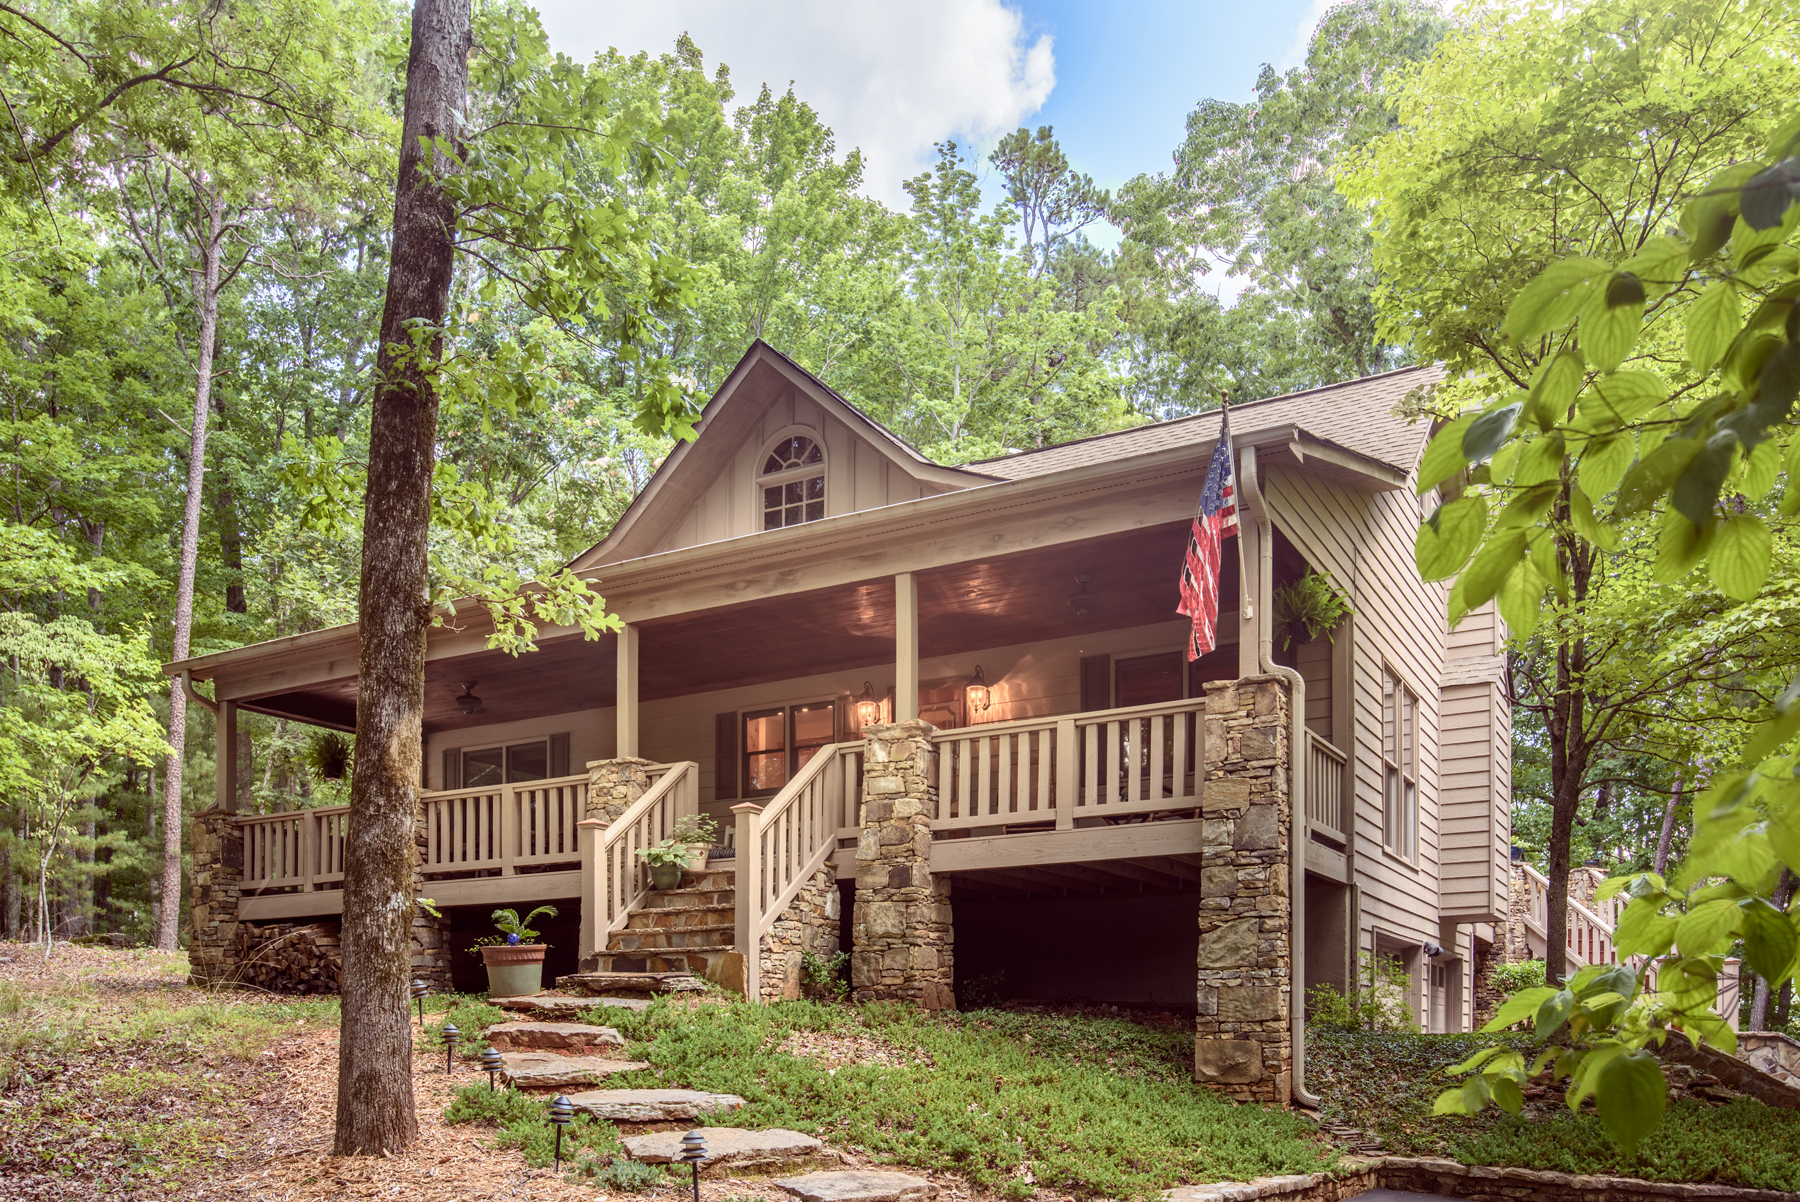 Single Family Home for Sale at Cabin on Perfect Building Knoll One Hour from Atlanta 340 Shetland Trace Big Canoe, Georgia, 30143 United States